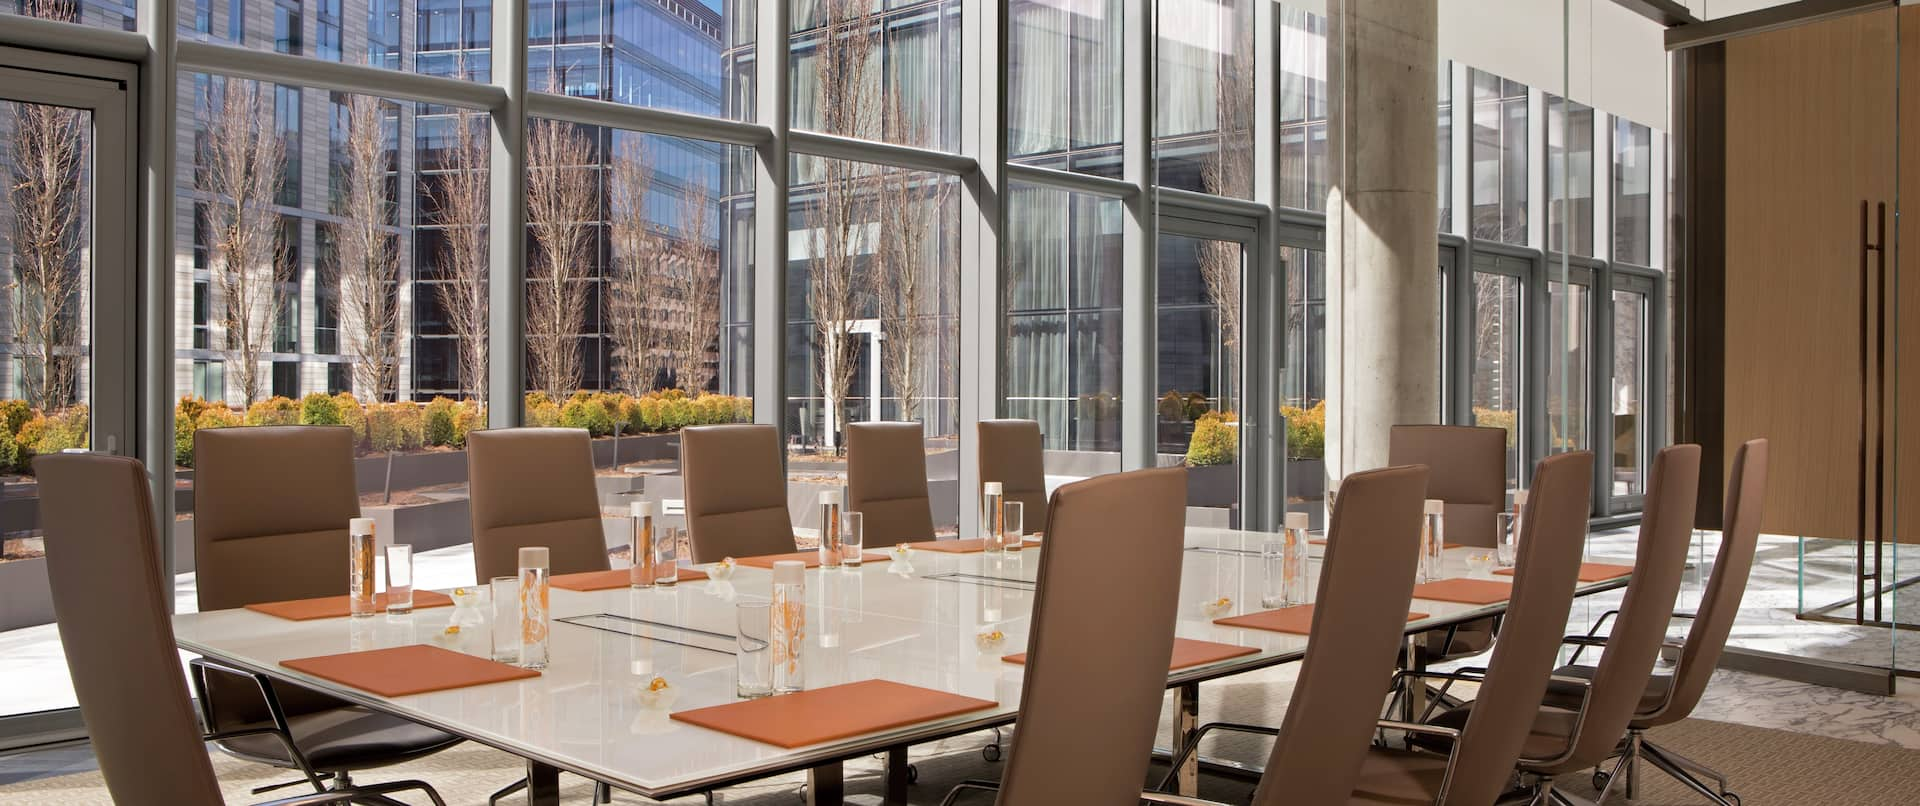 Terrace Boardroom with Table, Chairs, and Outside View